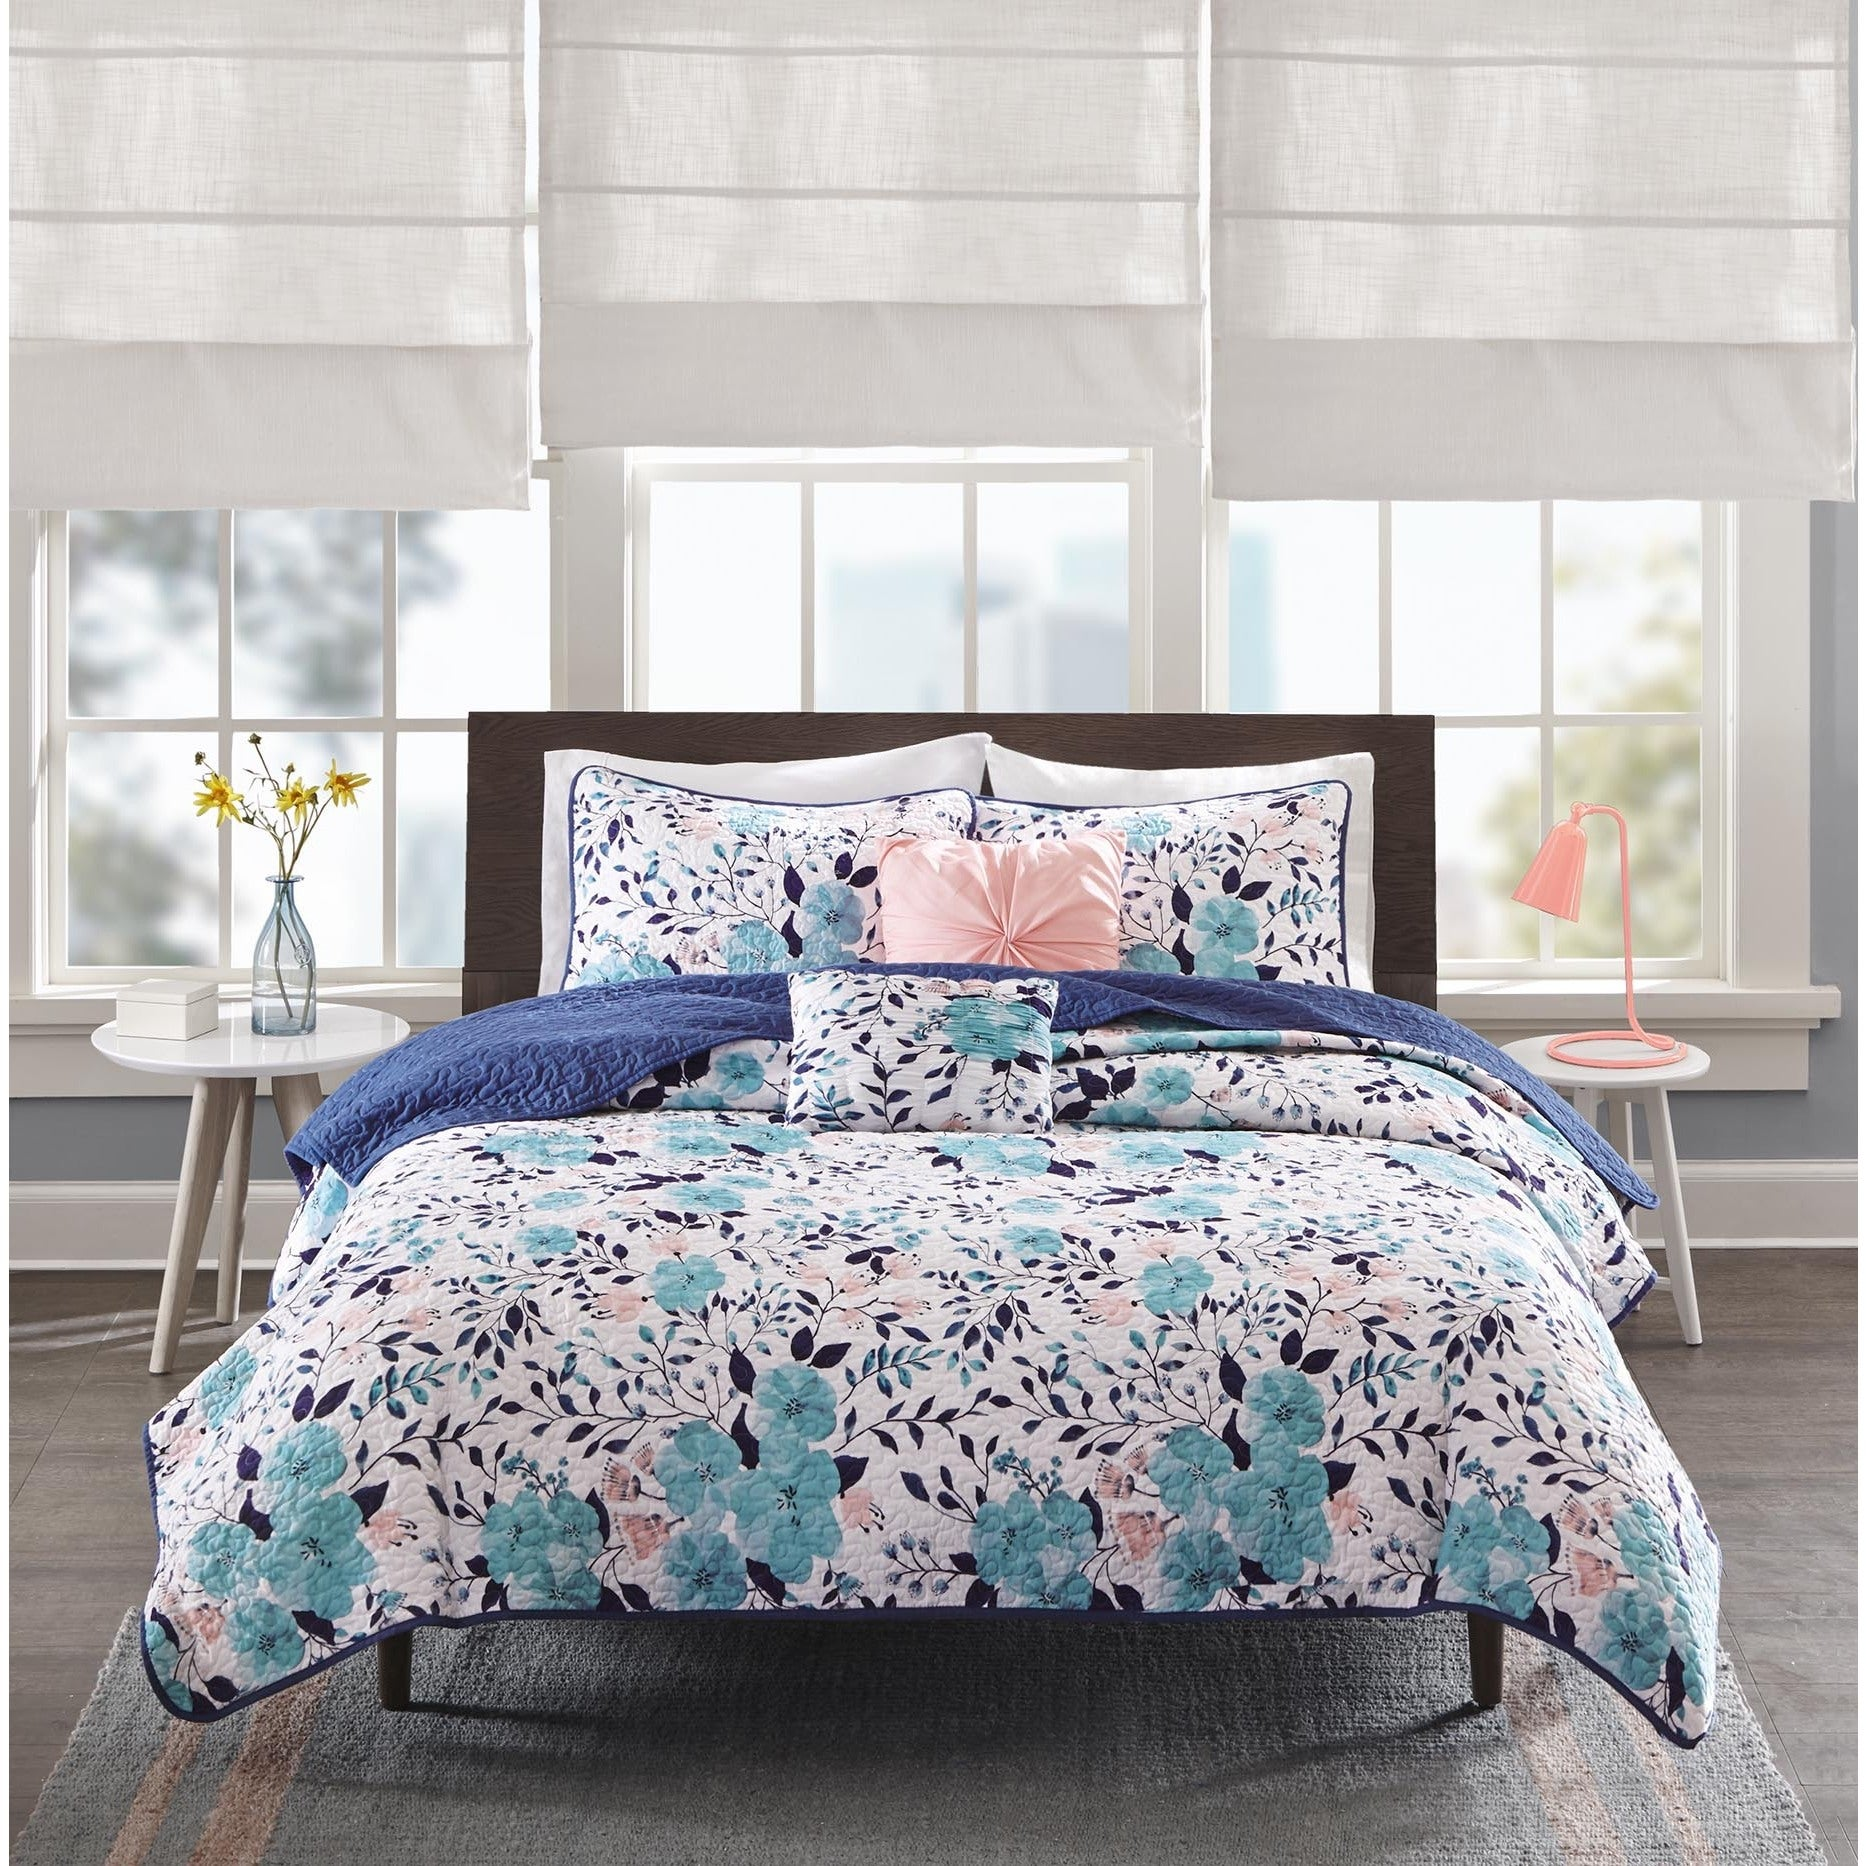 of bedspread tiffany french blue tile decor quilt twin comforter cool aqua canal furniture ideas